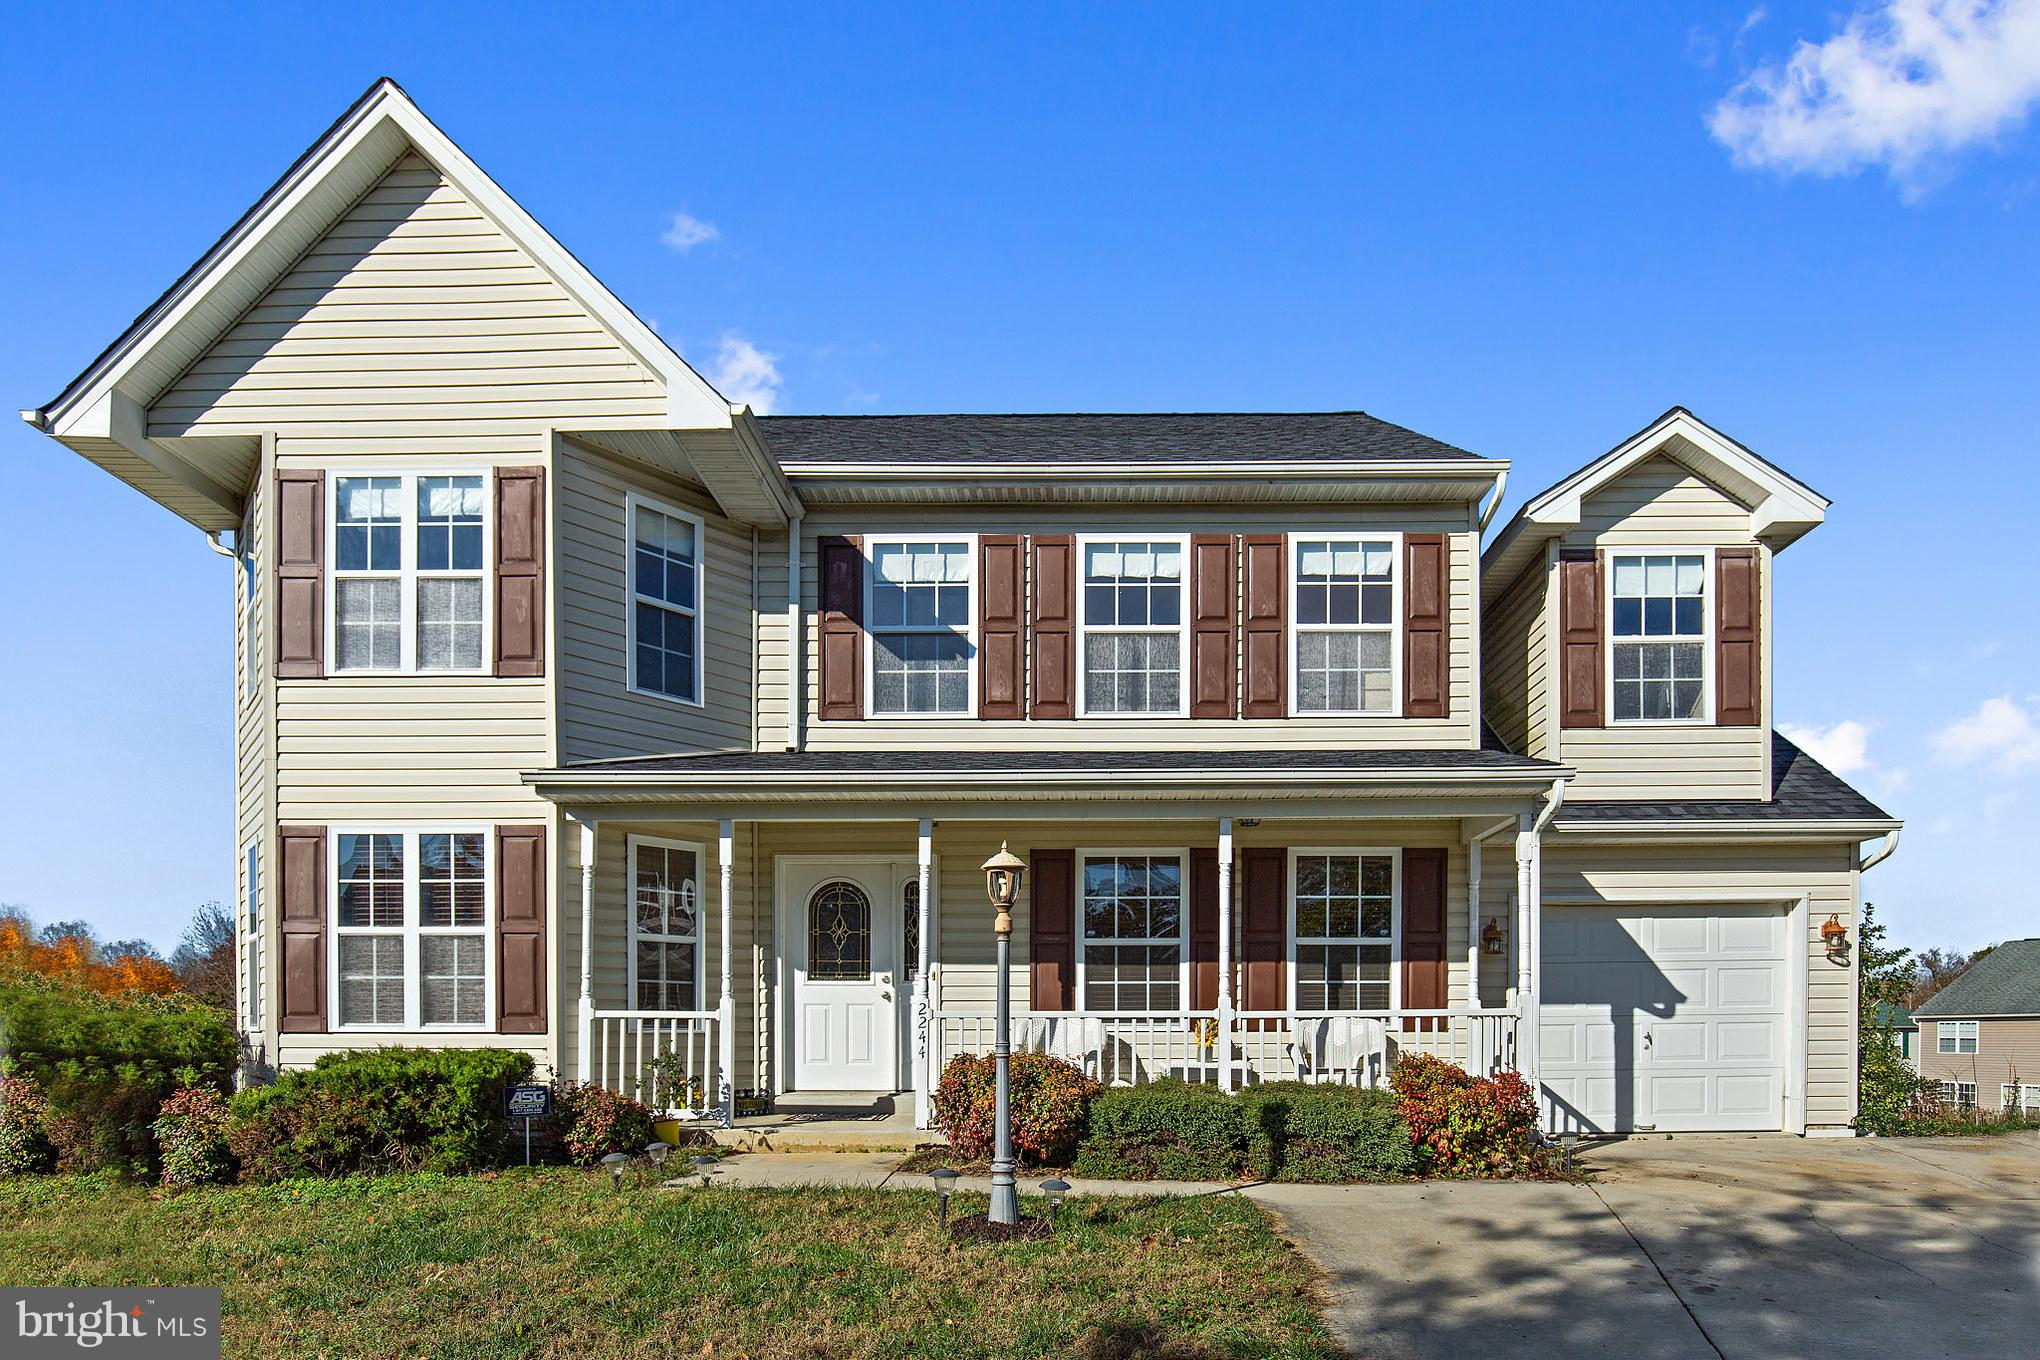 This 4 bedroom, 3.5 bath colonial offers comfortable living, with easy flow between the Living Room/